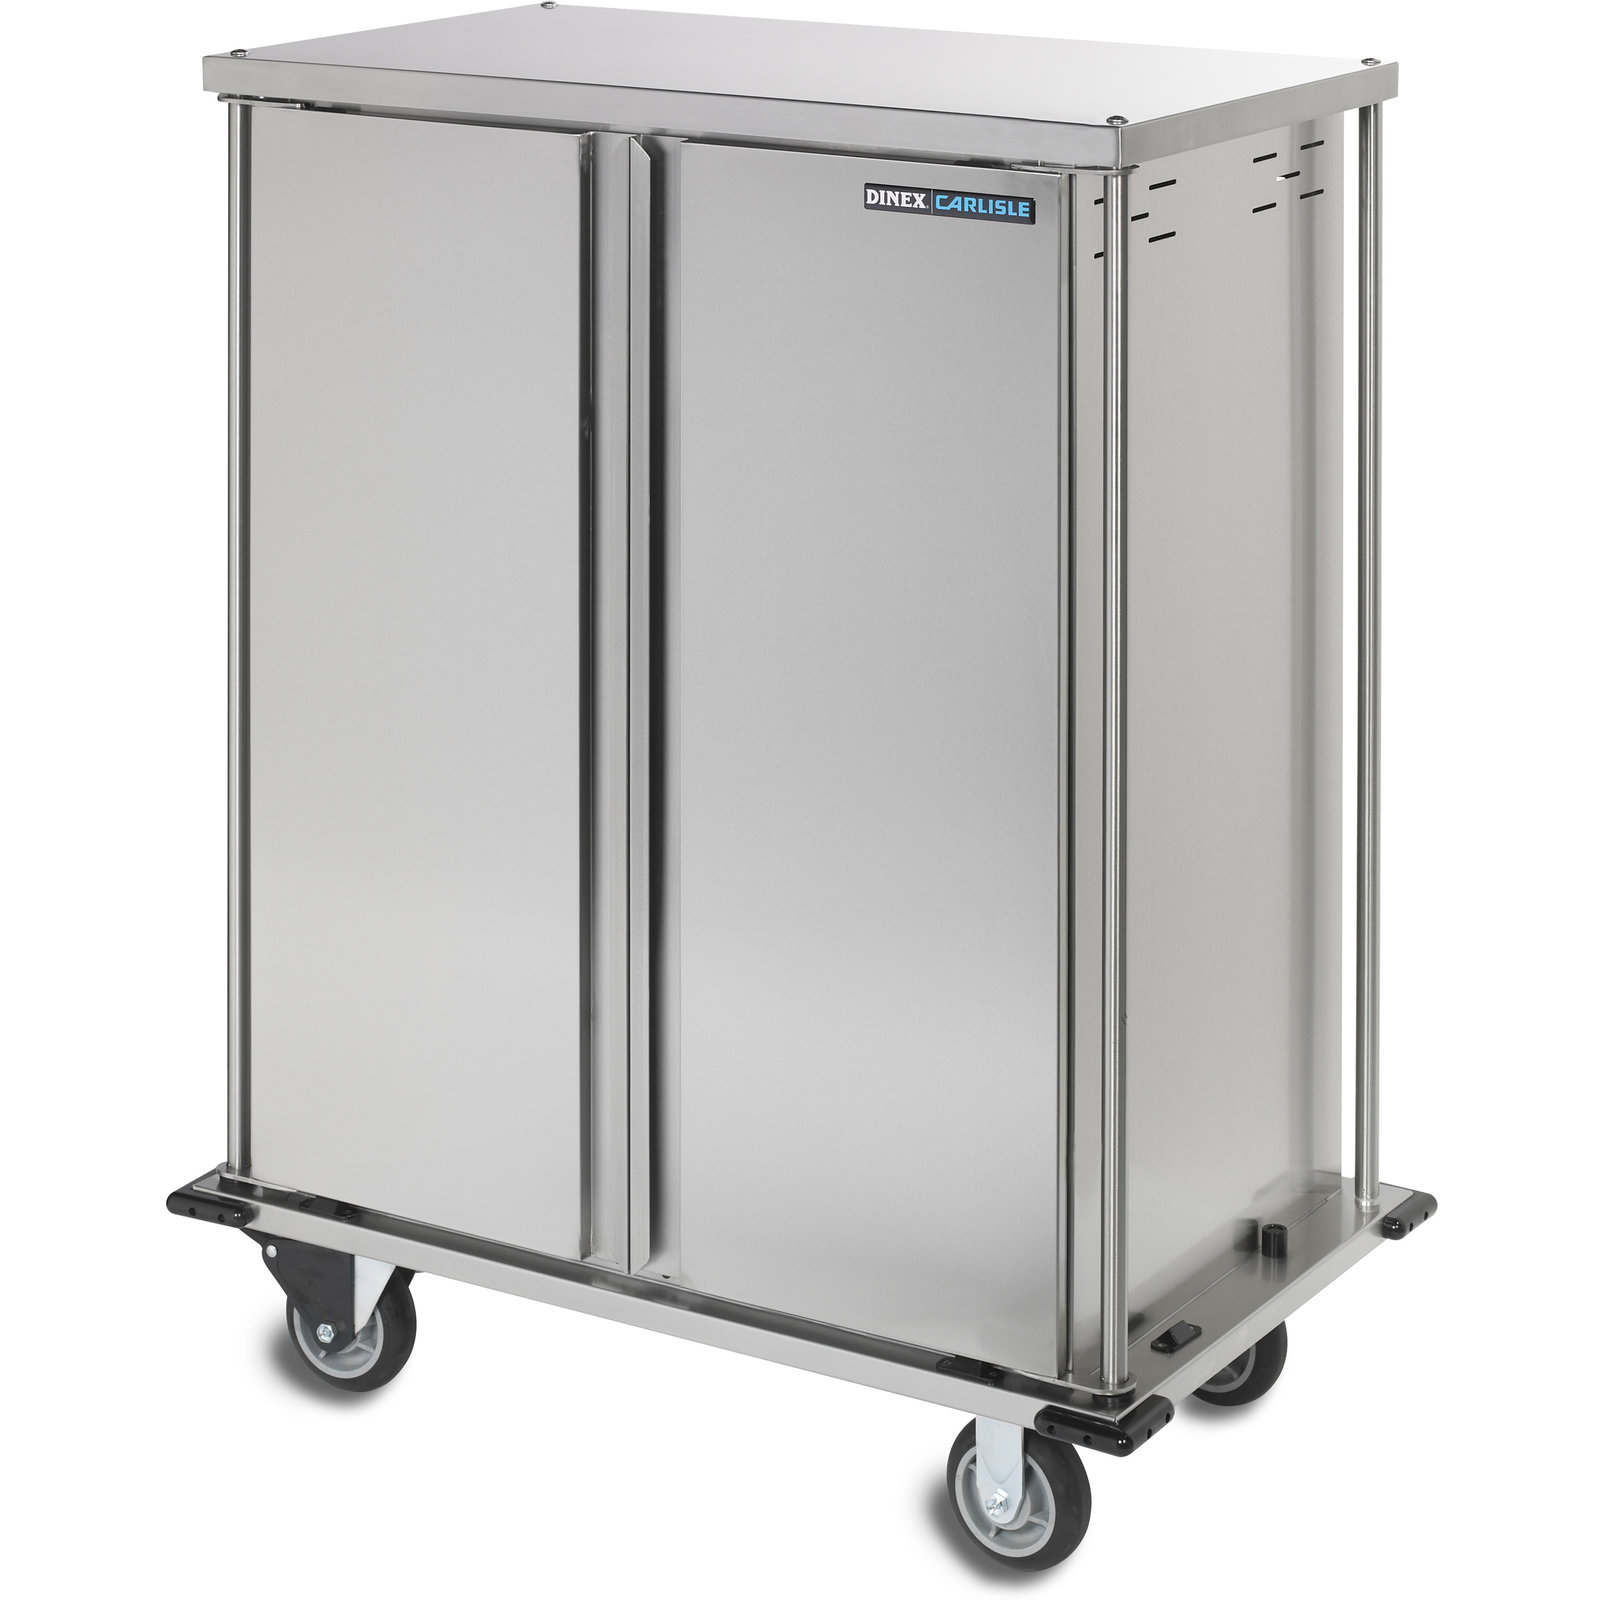 DXTQ1T2D10 10 Tray Cart Double Door One Tray per Slide 44.14  x 27.58  x 45.06  Available in 1 color ...  sc 1 st  Carlisle FoodService Products & TQ Meal Delivery Carts | Carlisle FoodService Products pezcame.com